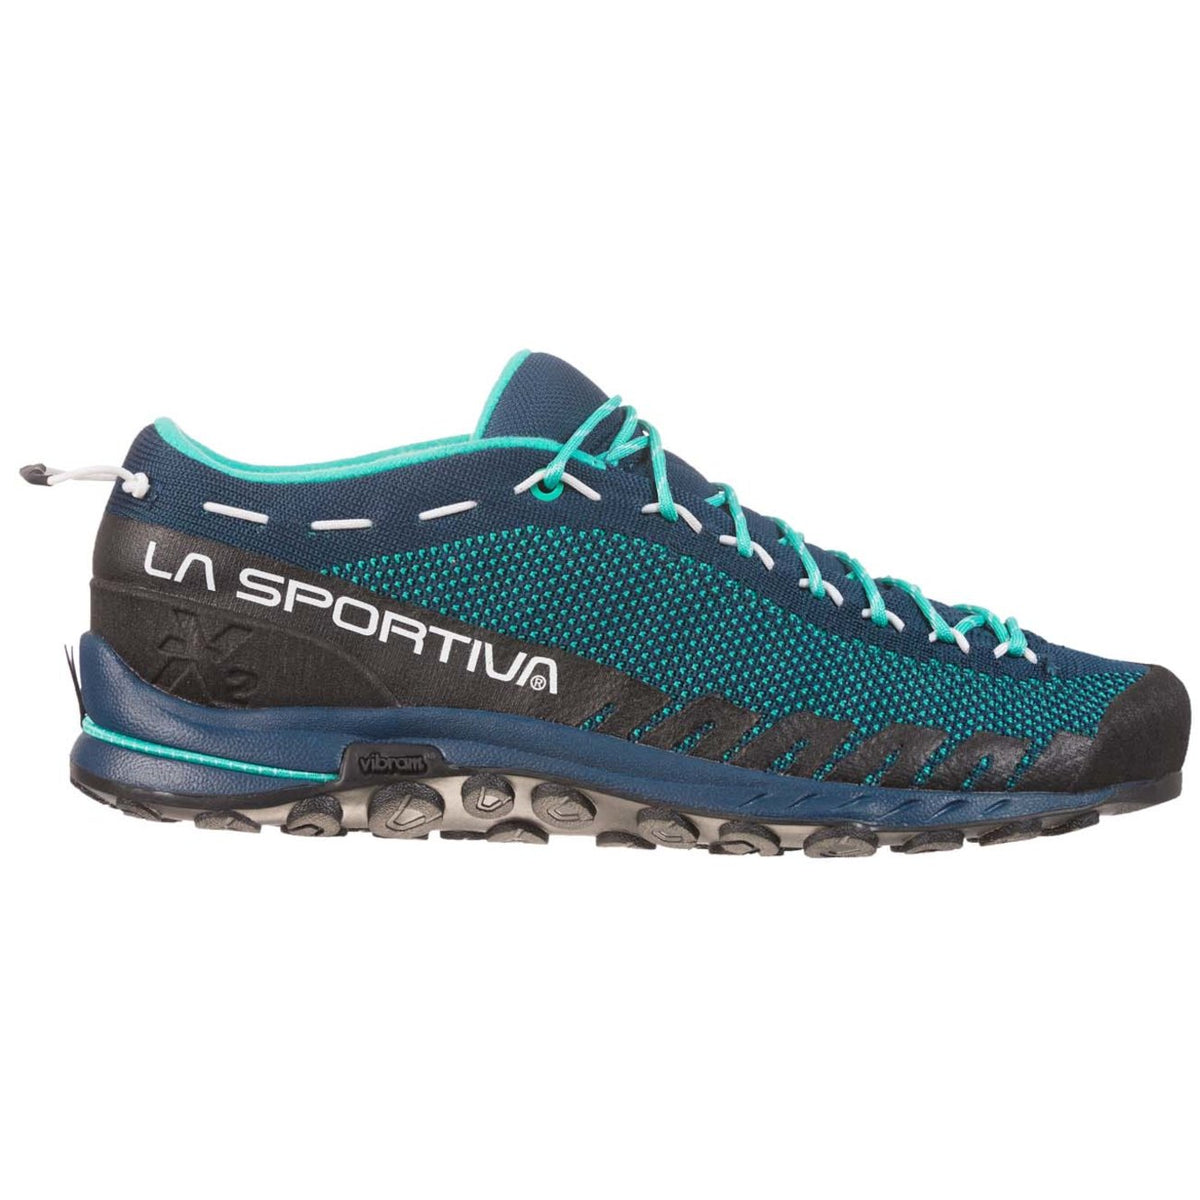 La Sportiva Tx2 Womens approach shoe, outer side view